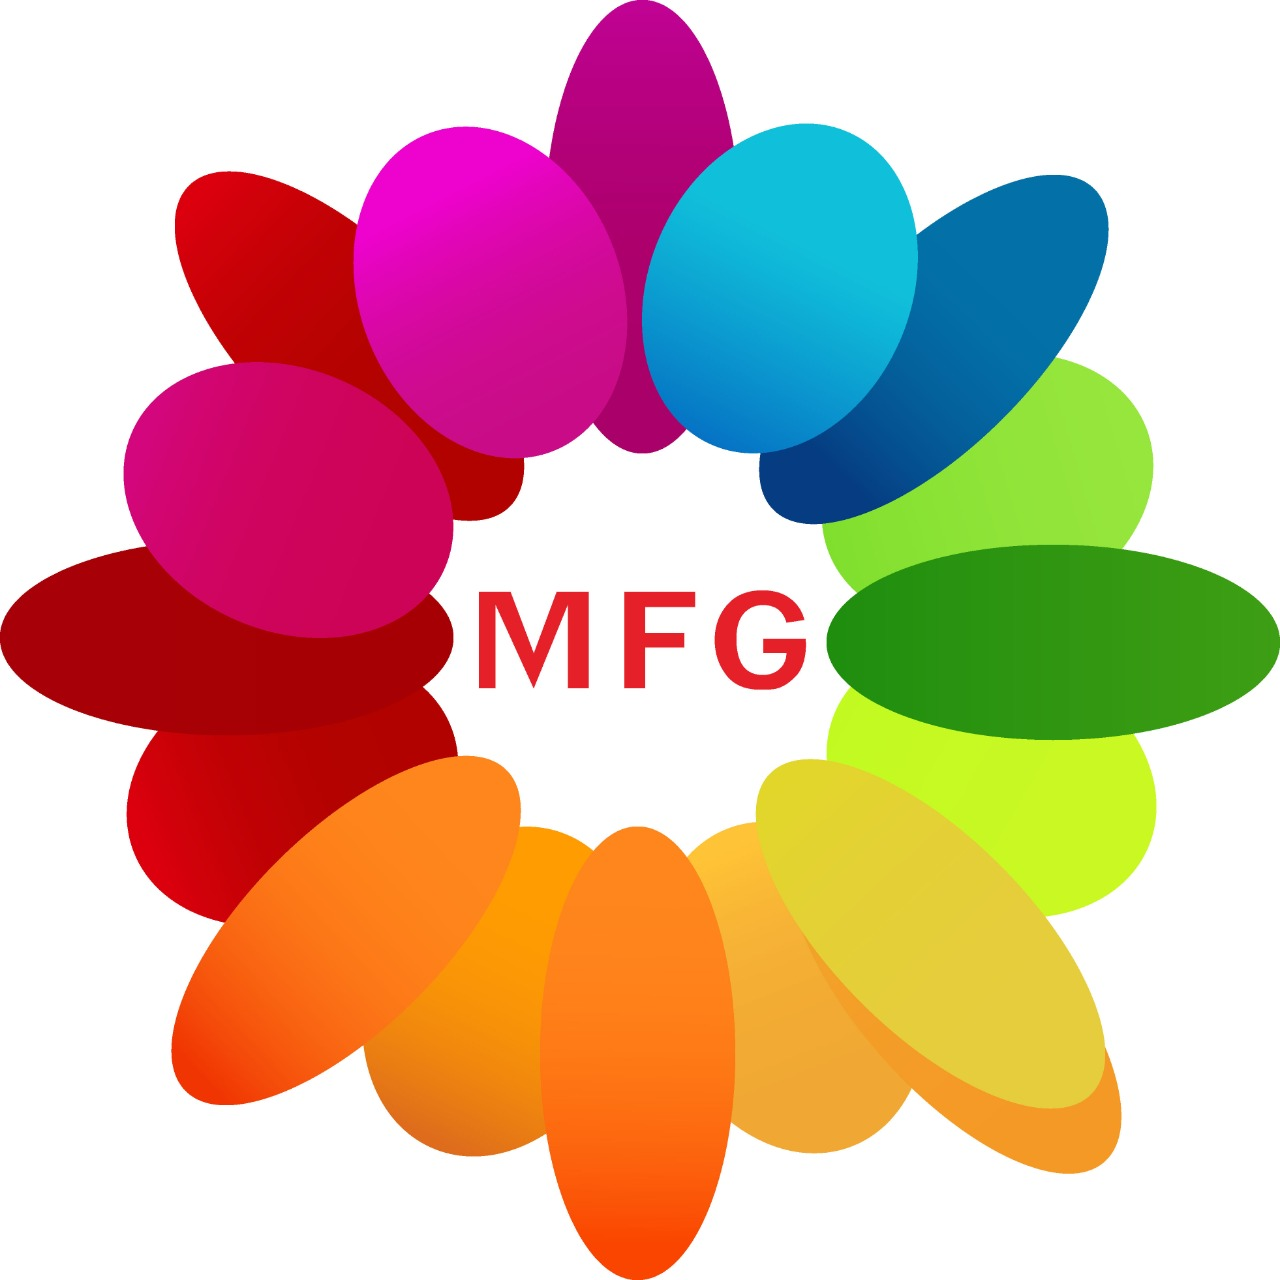 1 kg choco vanilla cake with bottle of wine